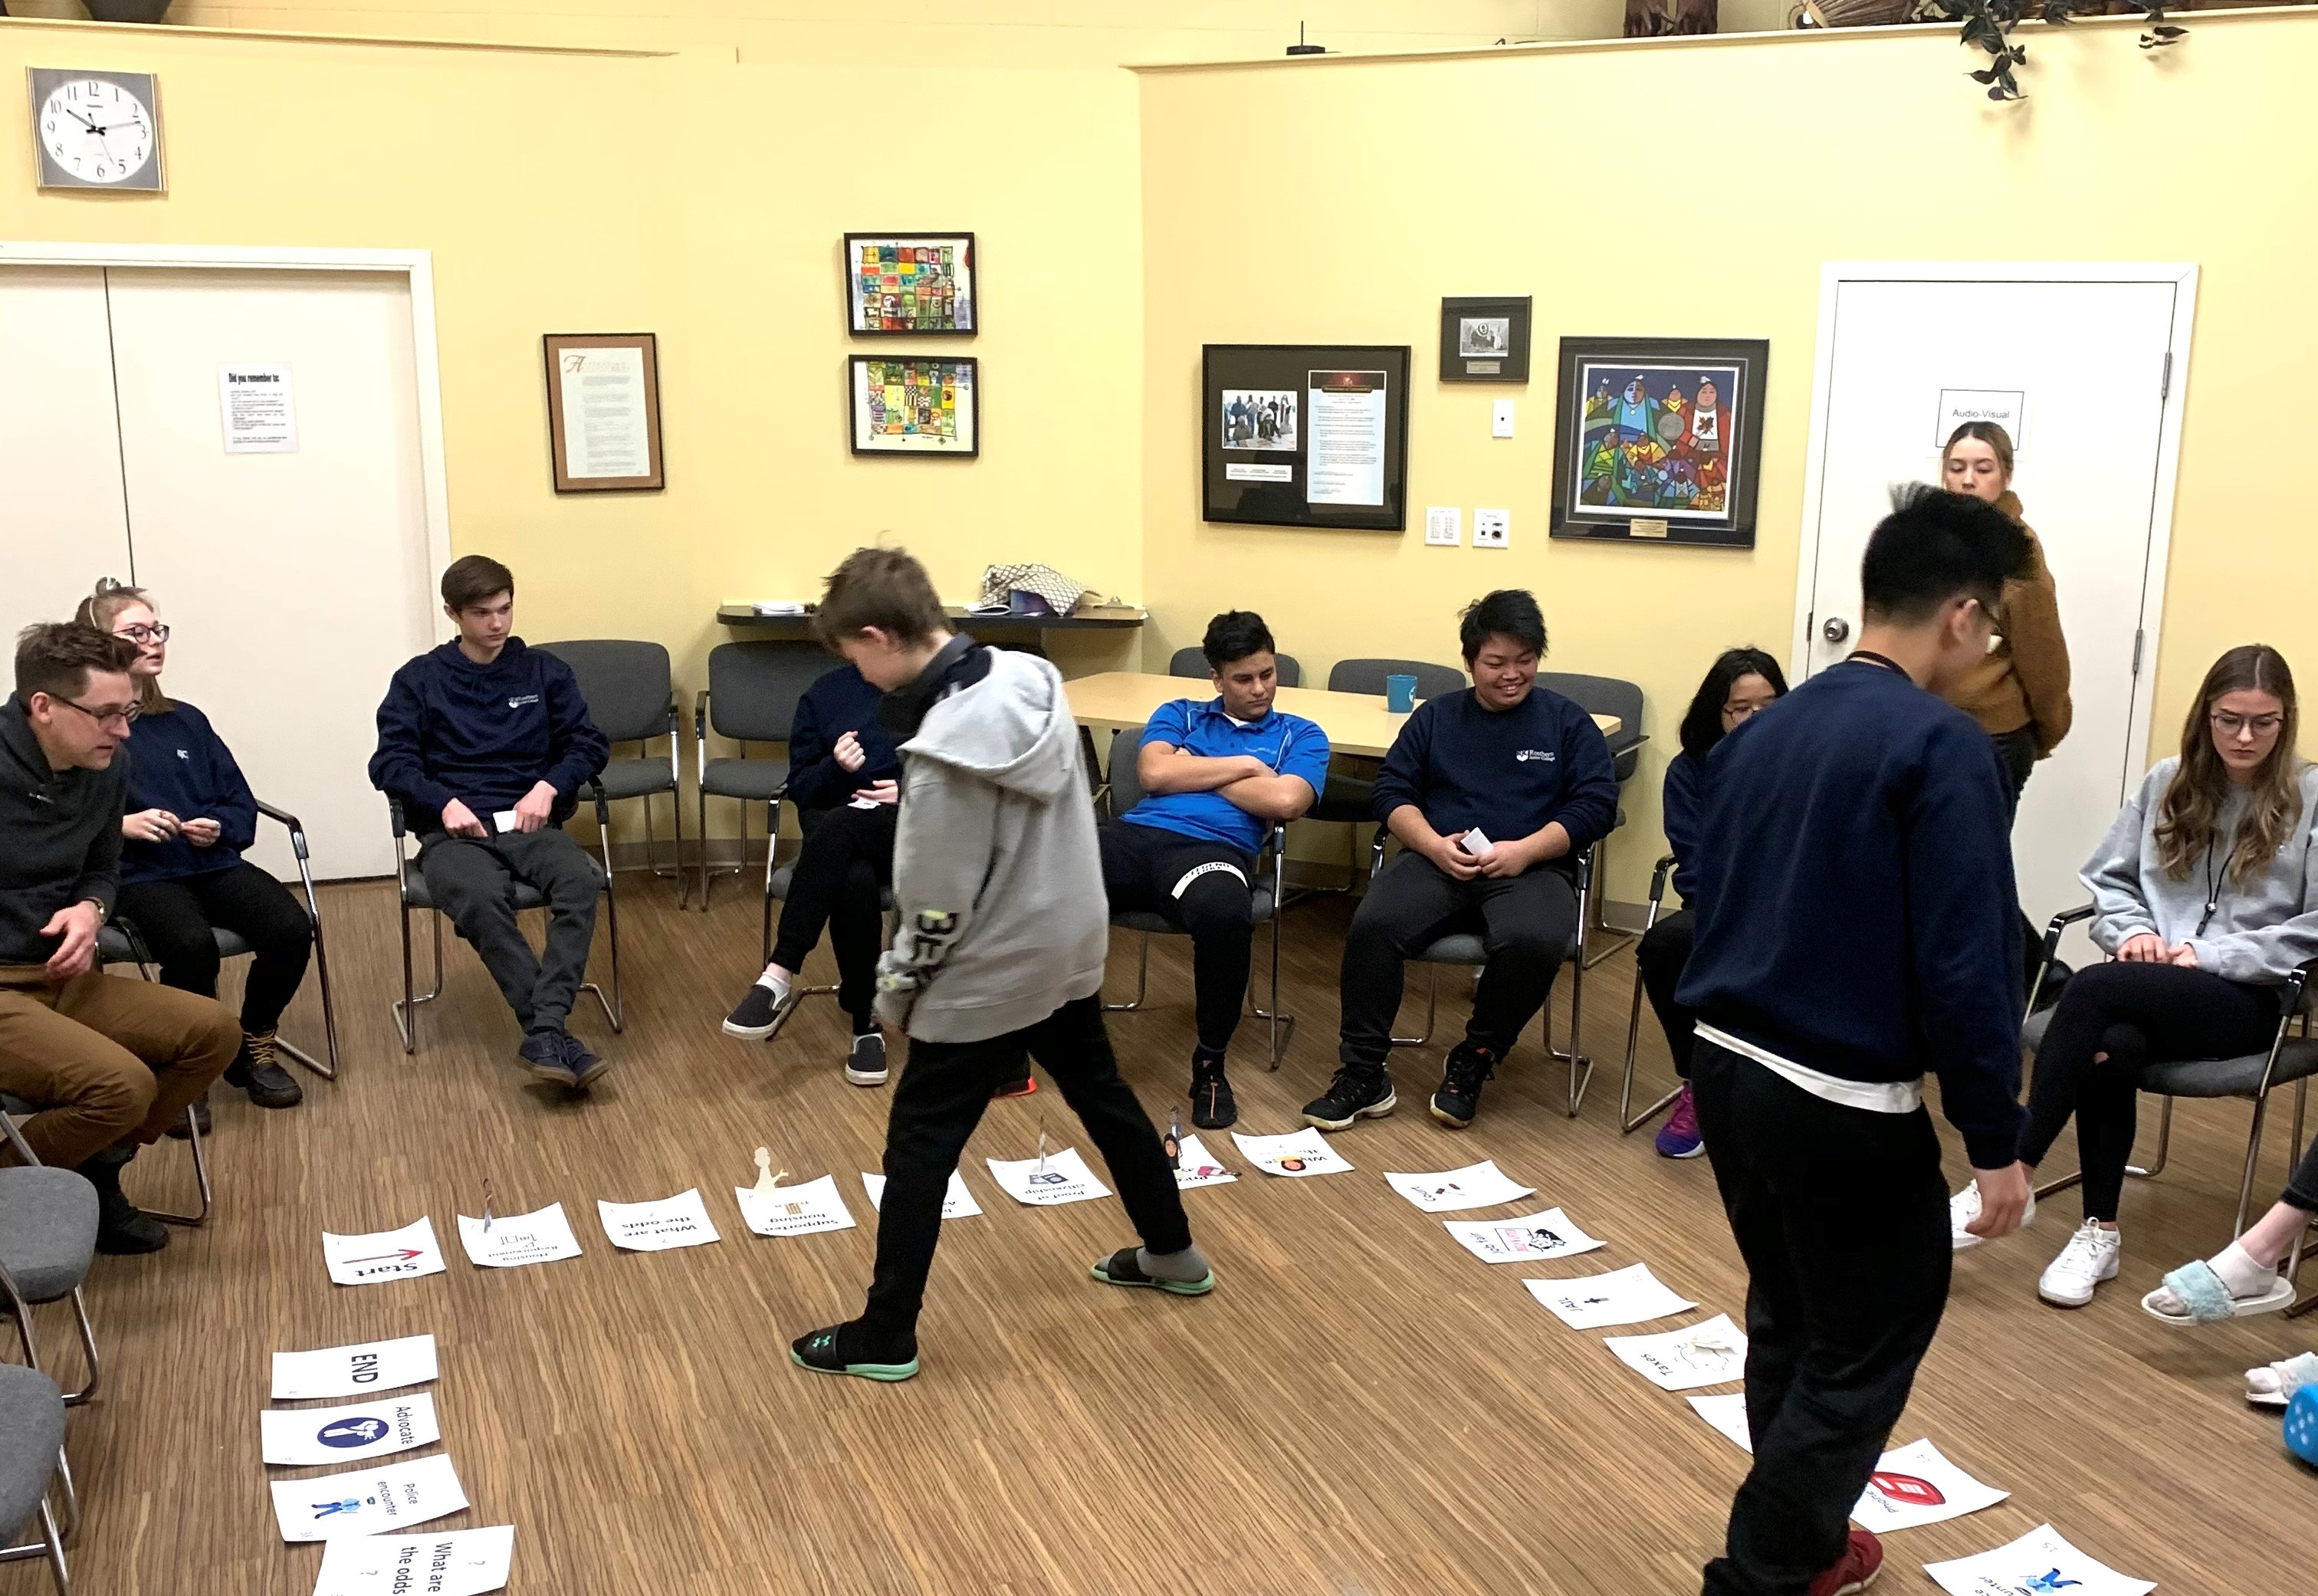 A circle of students watch as two classmates move around a game board.